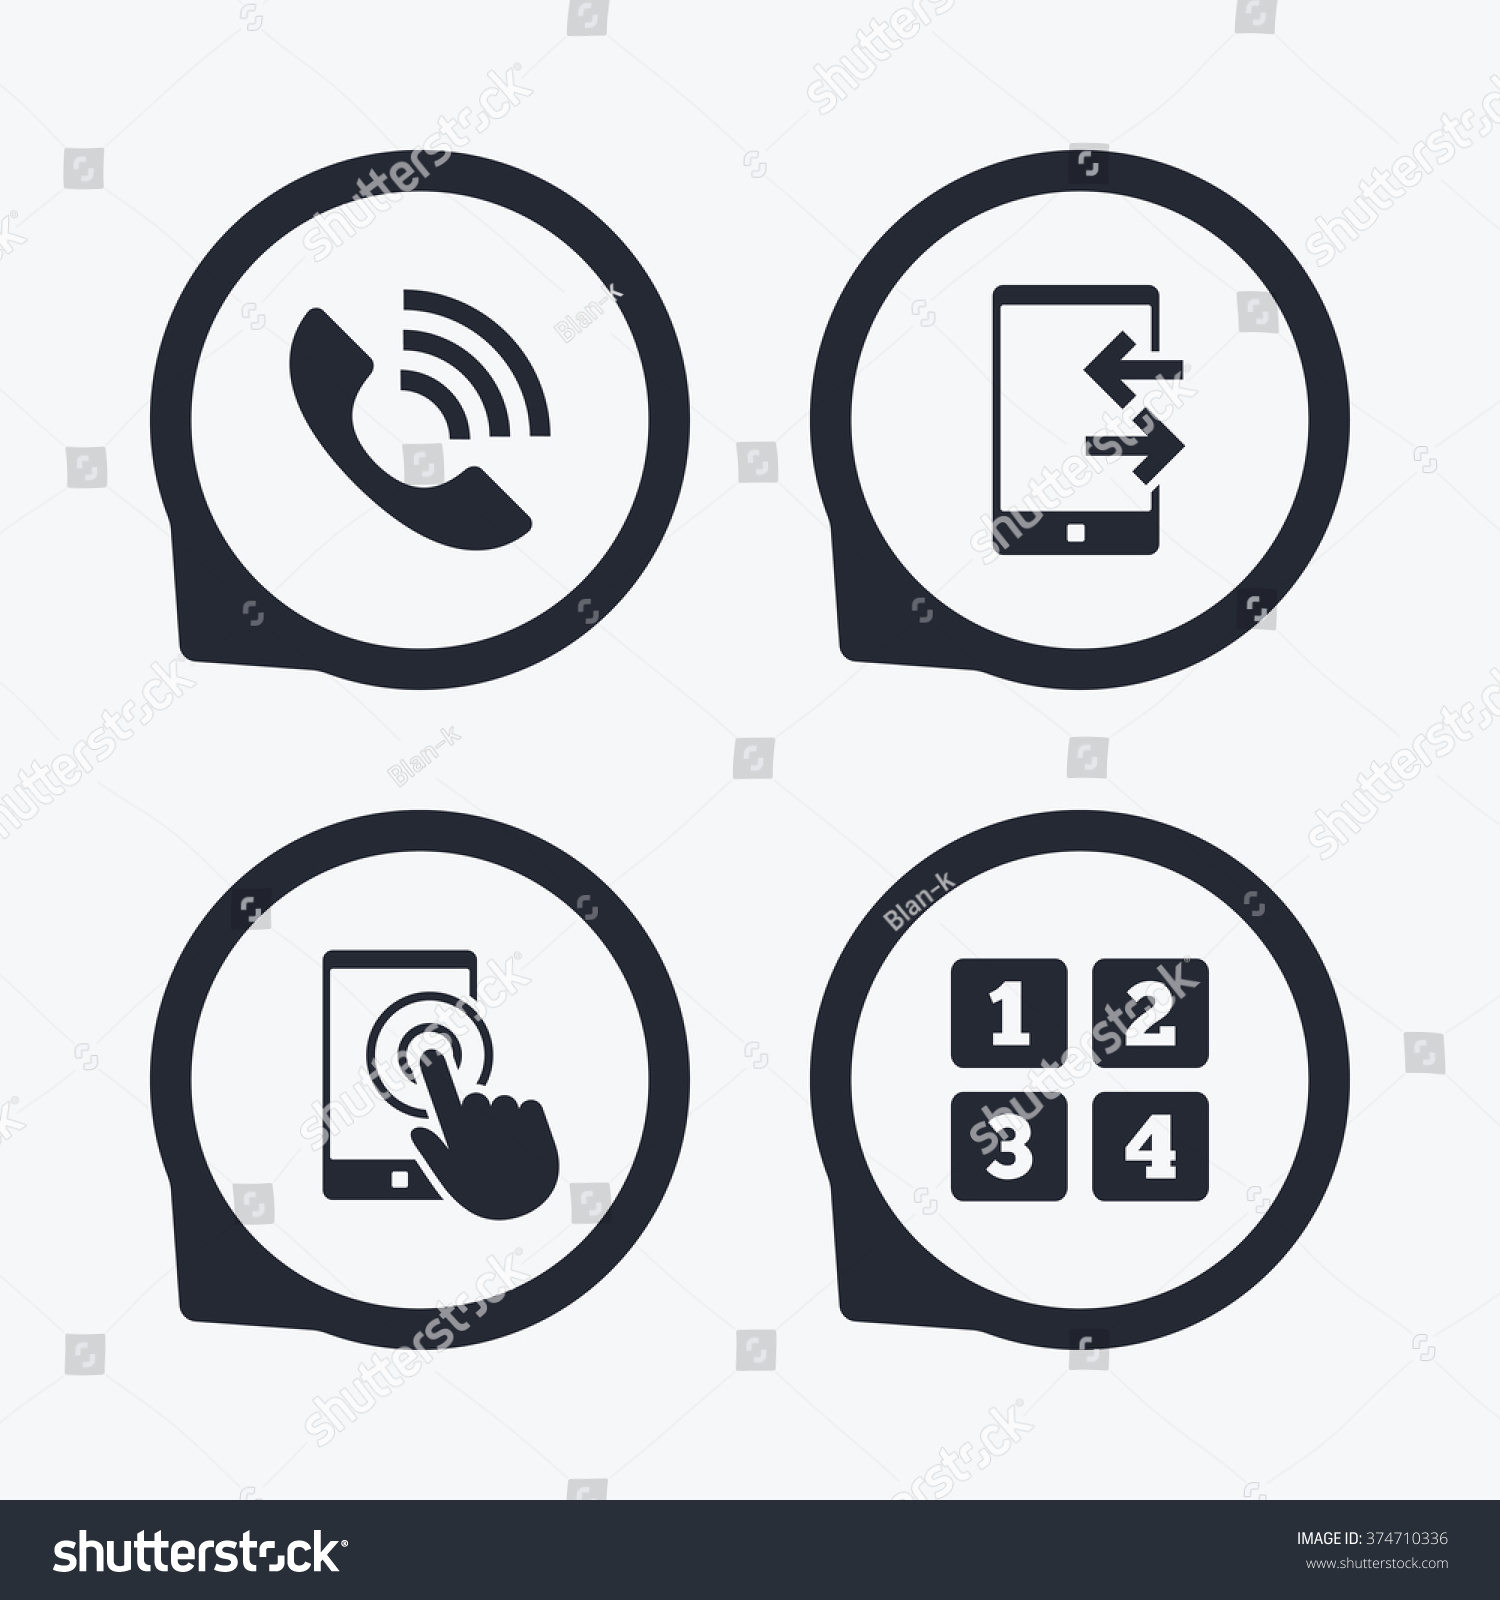 Phone icons touch screen smartphone sign stock vector 374710336 phone icons touch screen smartphone sign call center support symbol cellphone keyboard symbol biocorpaavc Images